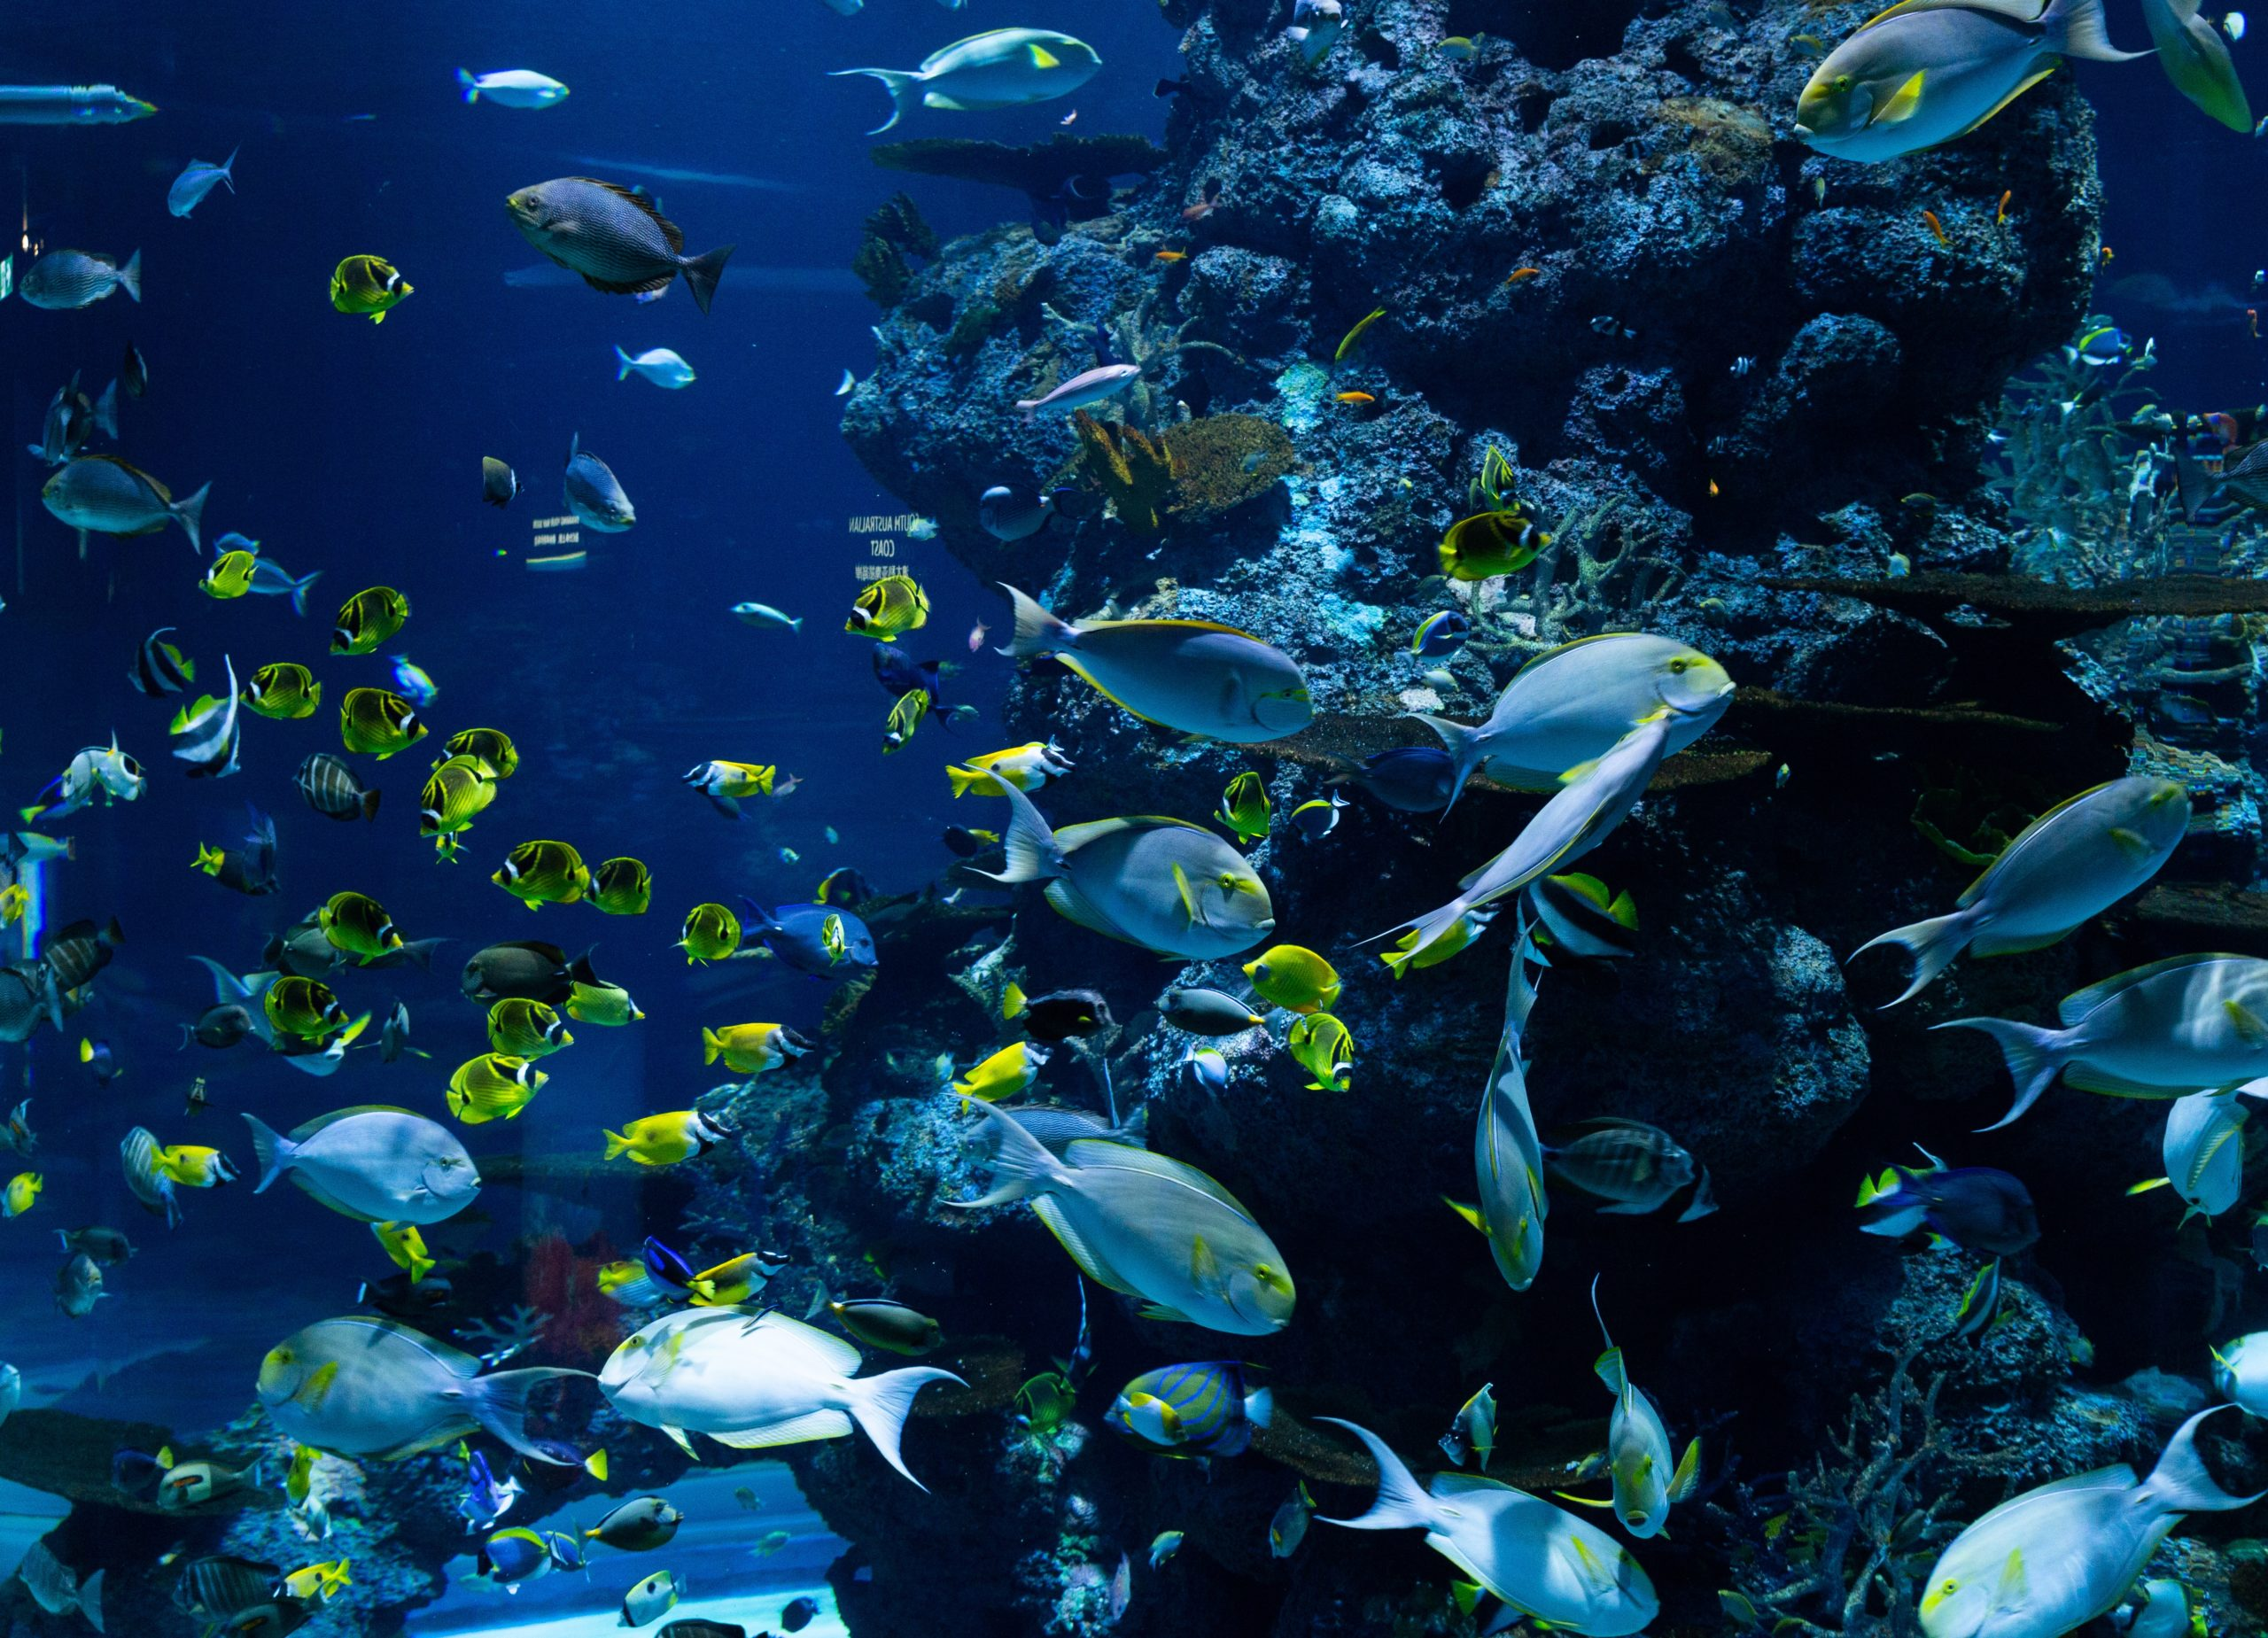 endangered animals in the coral reef